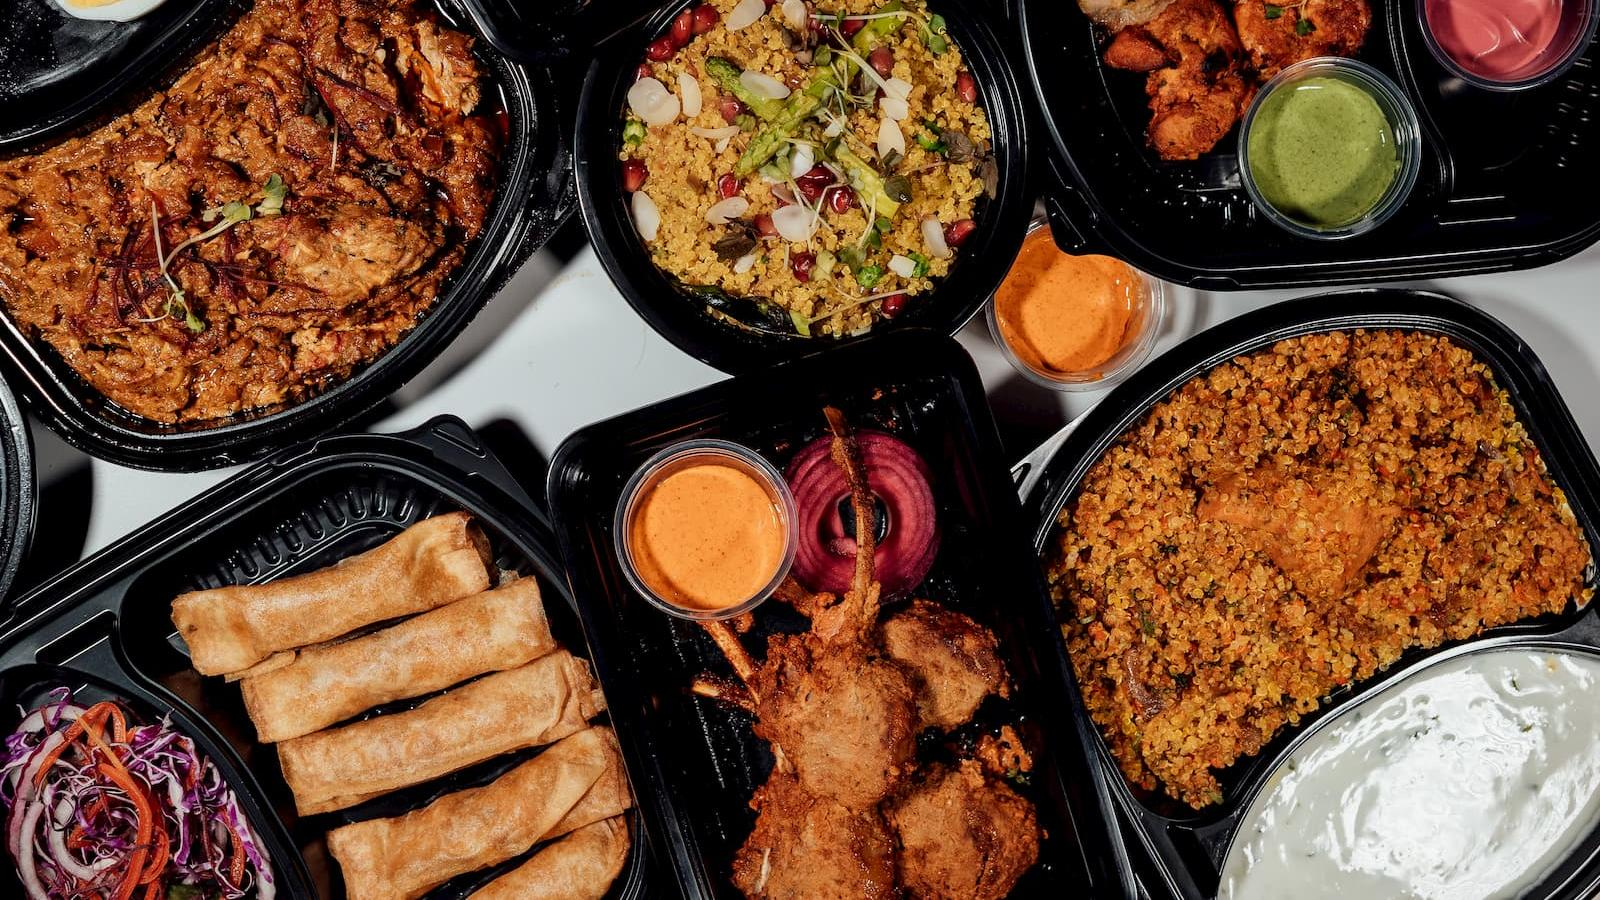 Enjoy scrumptious Indian food with delivery from The Curry House